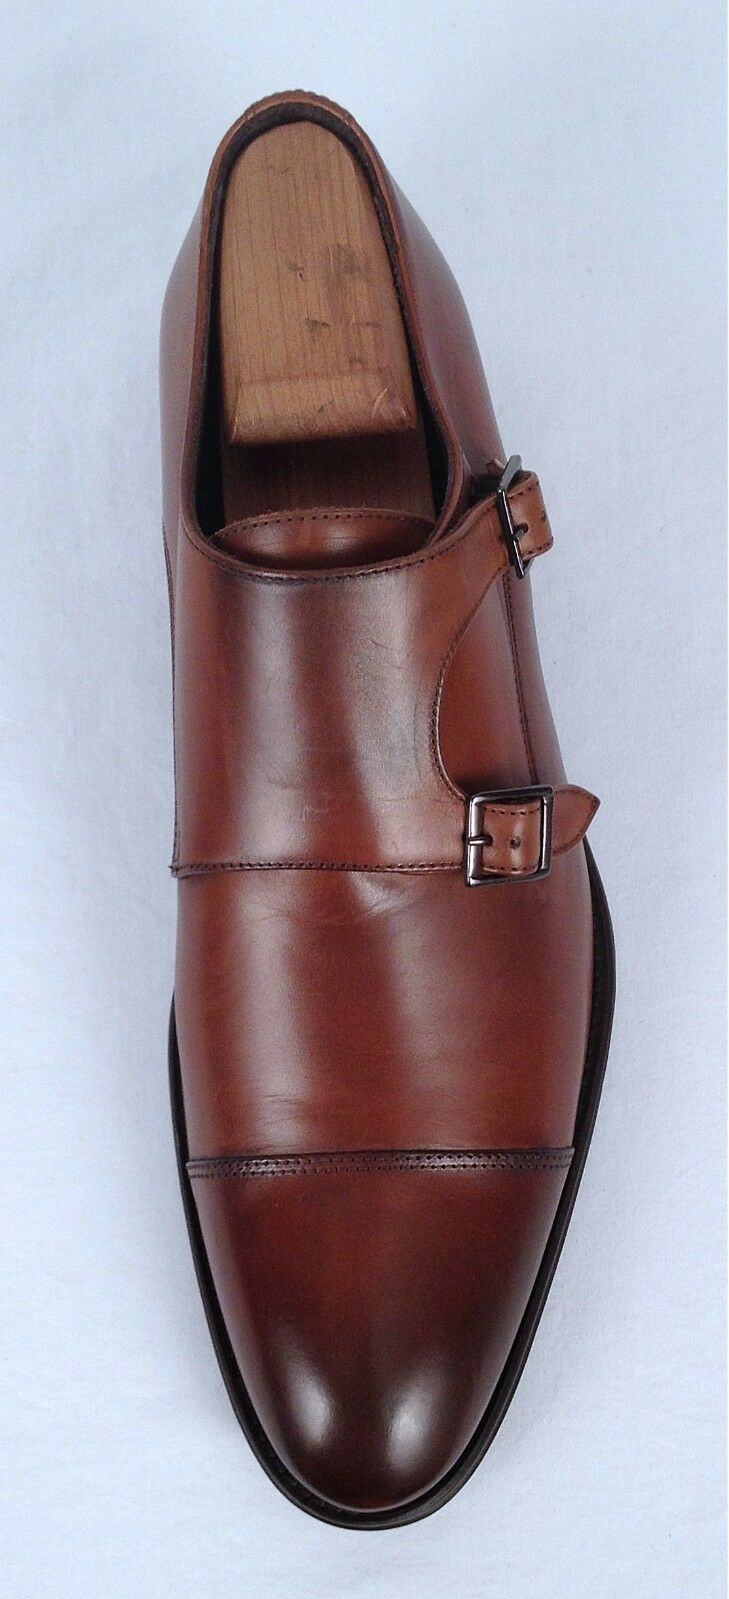 NEW To Stiefel New York 'Medford' Double Monk Monk Monk - Cognac Größe 10 M  425 (C23) f29fb1